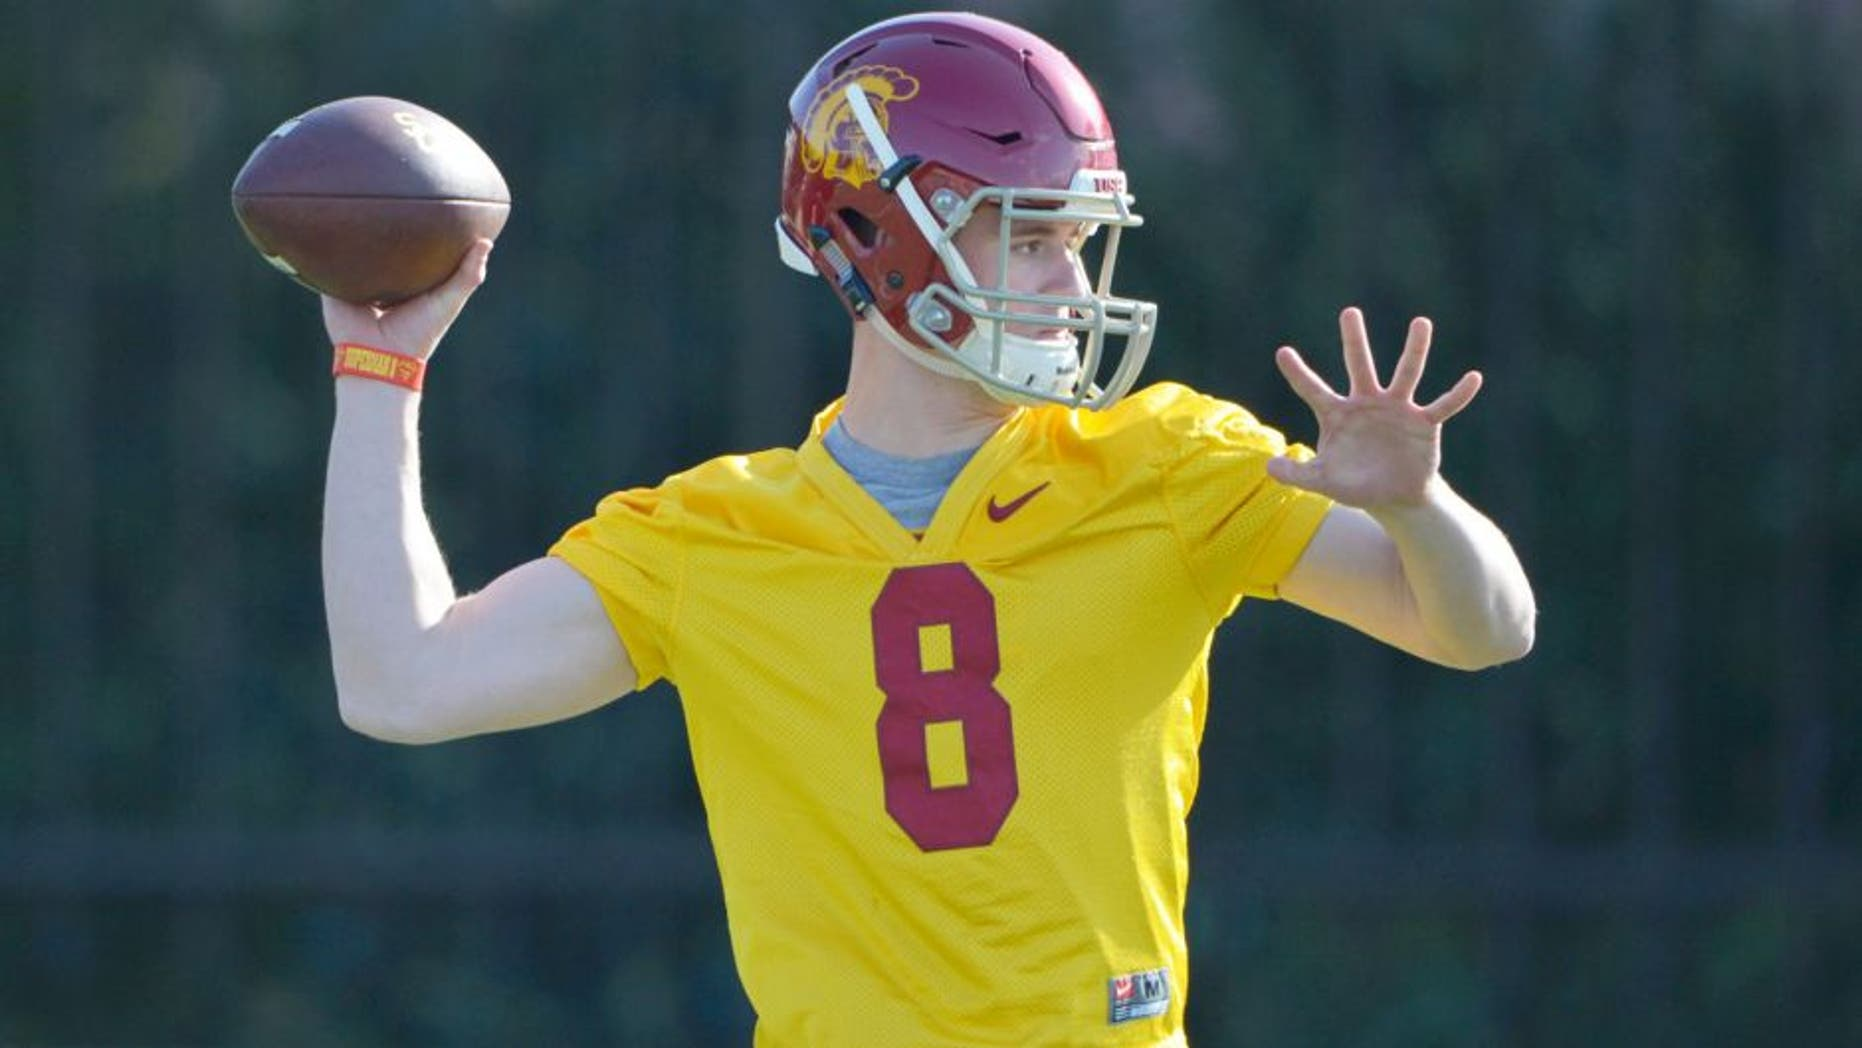 Mar 3, 2015; Los Angeles, CA, USA; Southern California Trojans quarterback Ricky Town (8) throws a pass at spring practice at Cromwell Field. Mandatory Credit: Kirby Lee-USA TODAY Sports